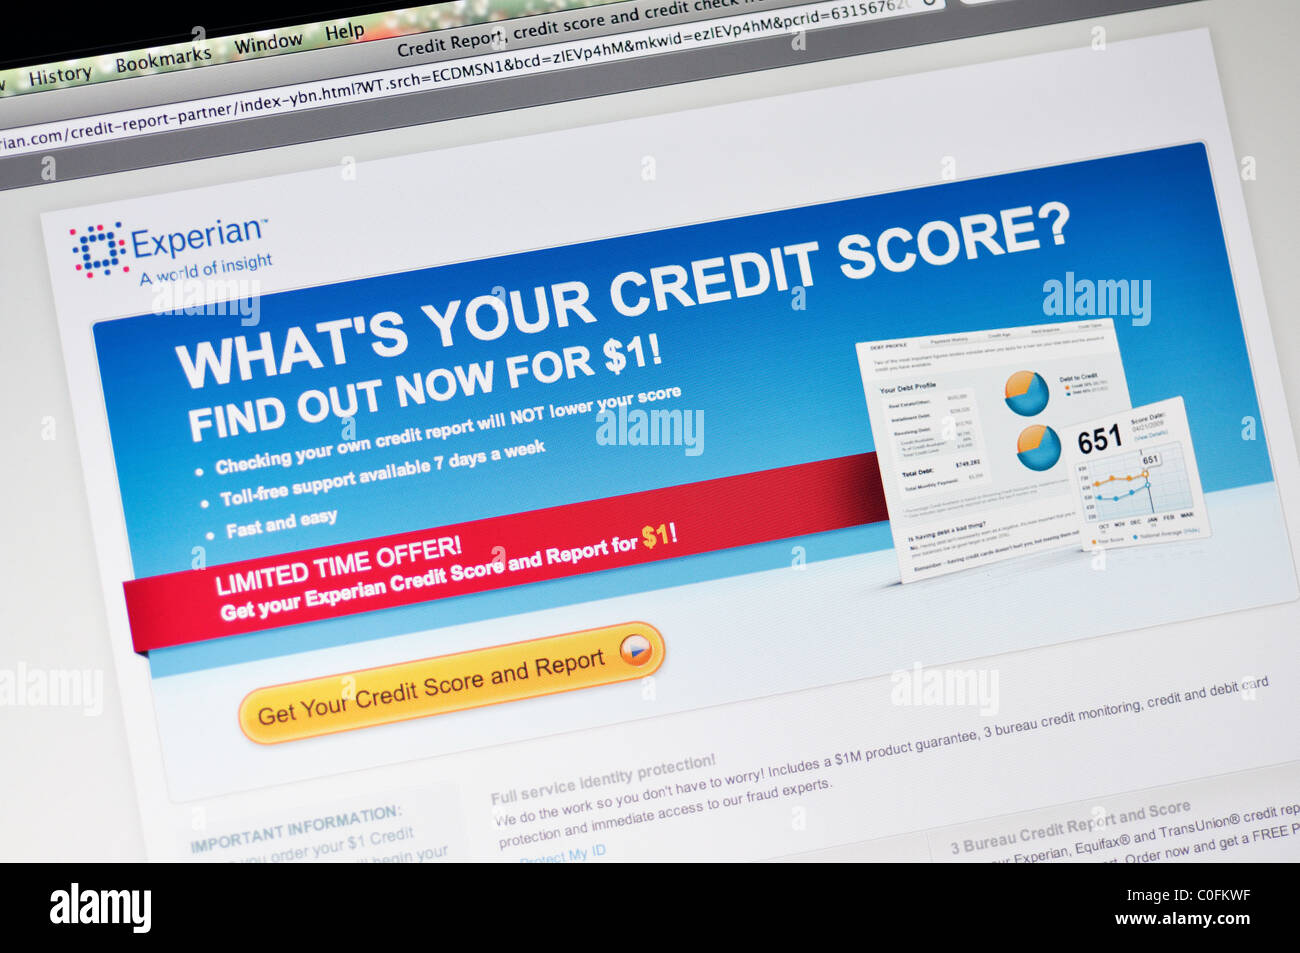 experian free credit score car insurance cover hurricane damage. Black Bedroom Furniture Sets. Home Design Ideas